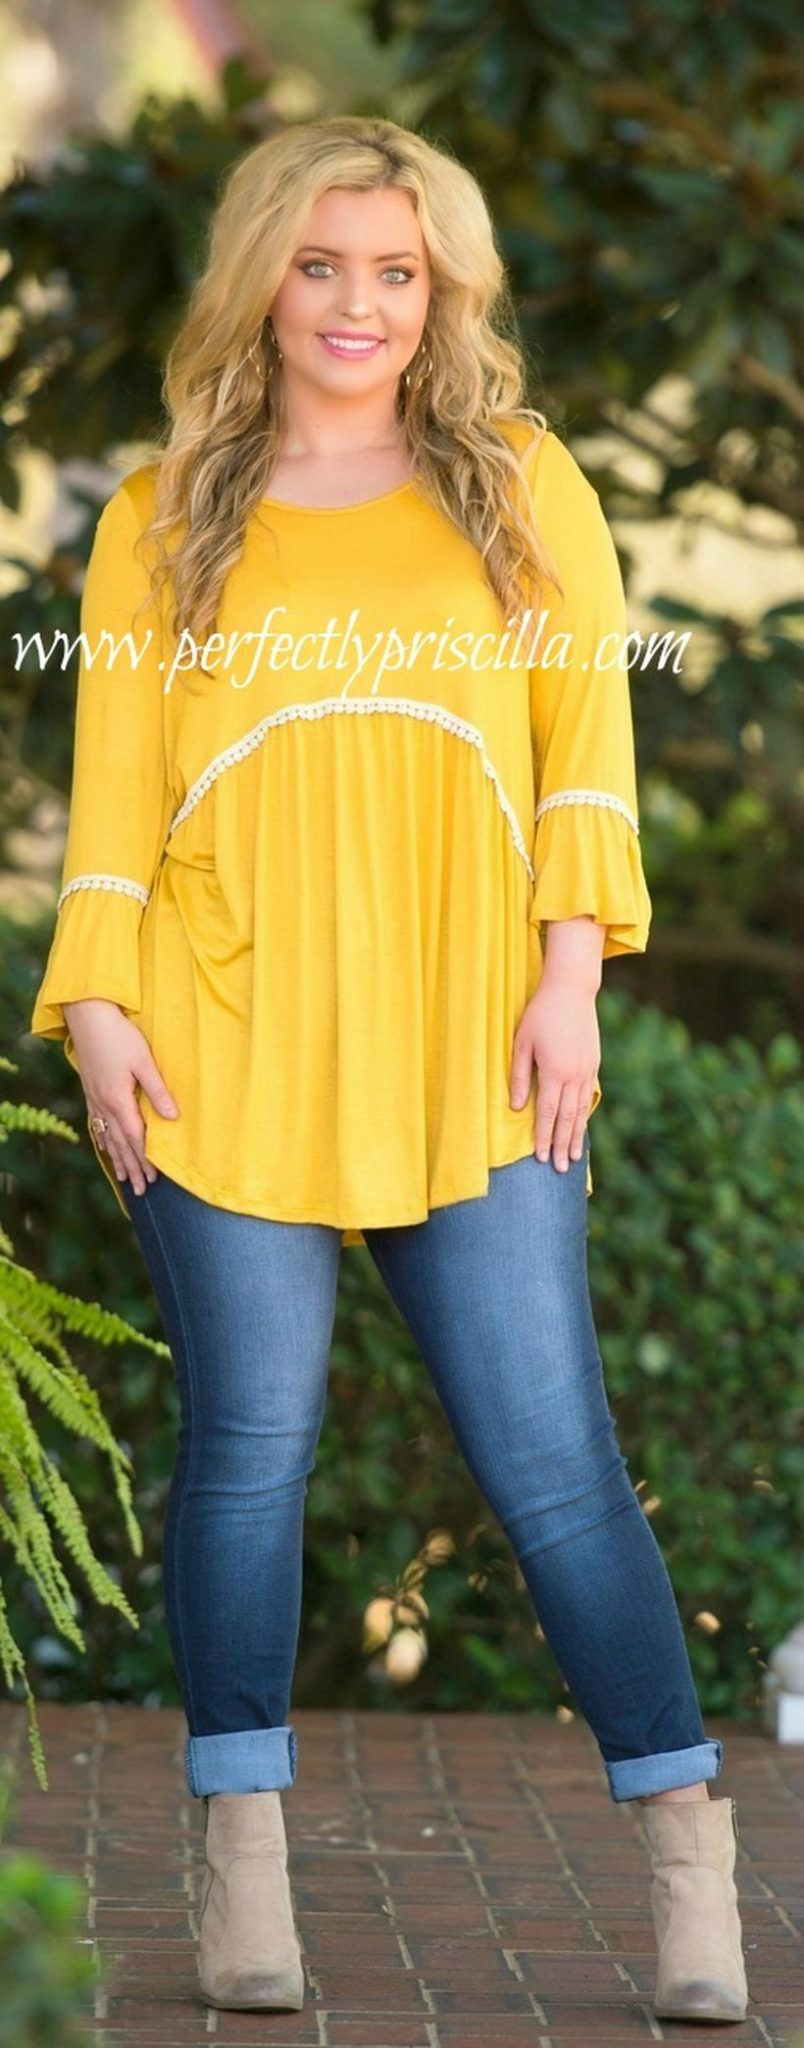 Stylish plus size outfits for winter 2017 19